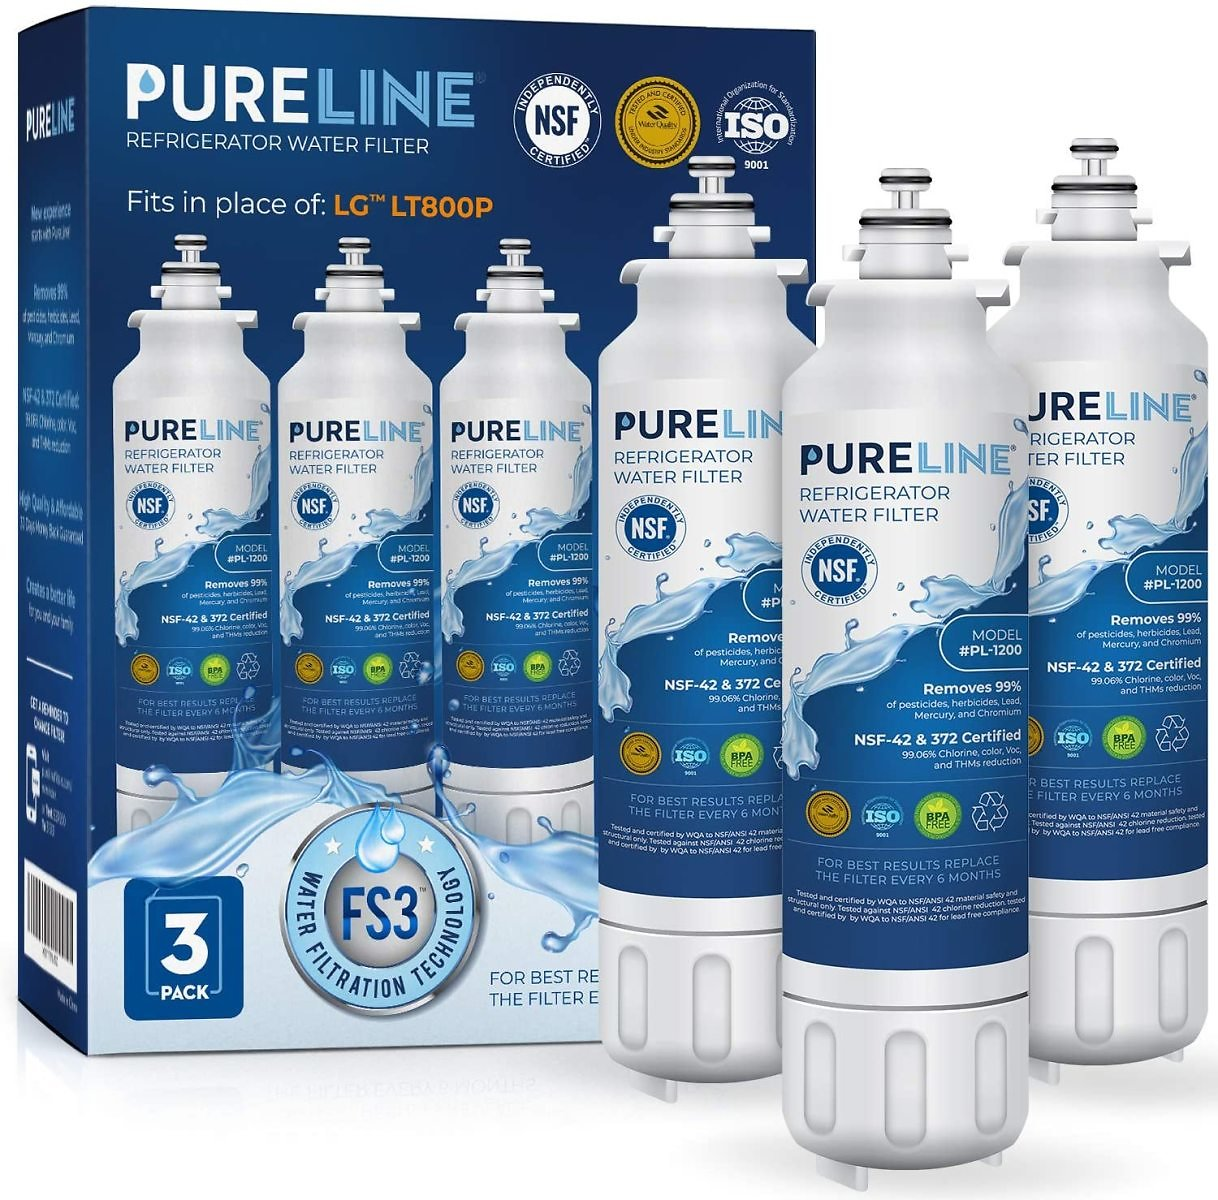 PURELINE 9490 & LT800P Water Filter Replacement with Advanced Filtration. Compatible with Kenmore 9490, LG LT800p, LG ADQ7361340